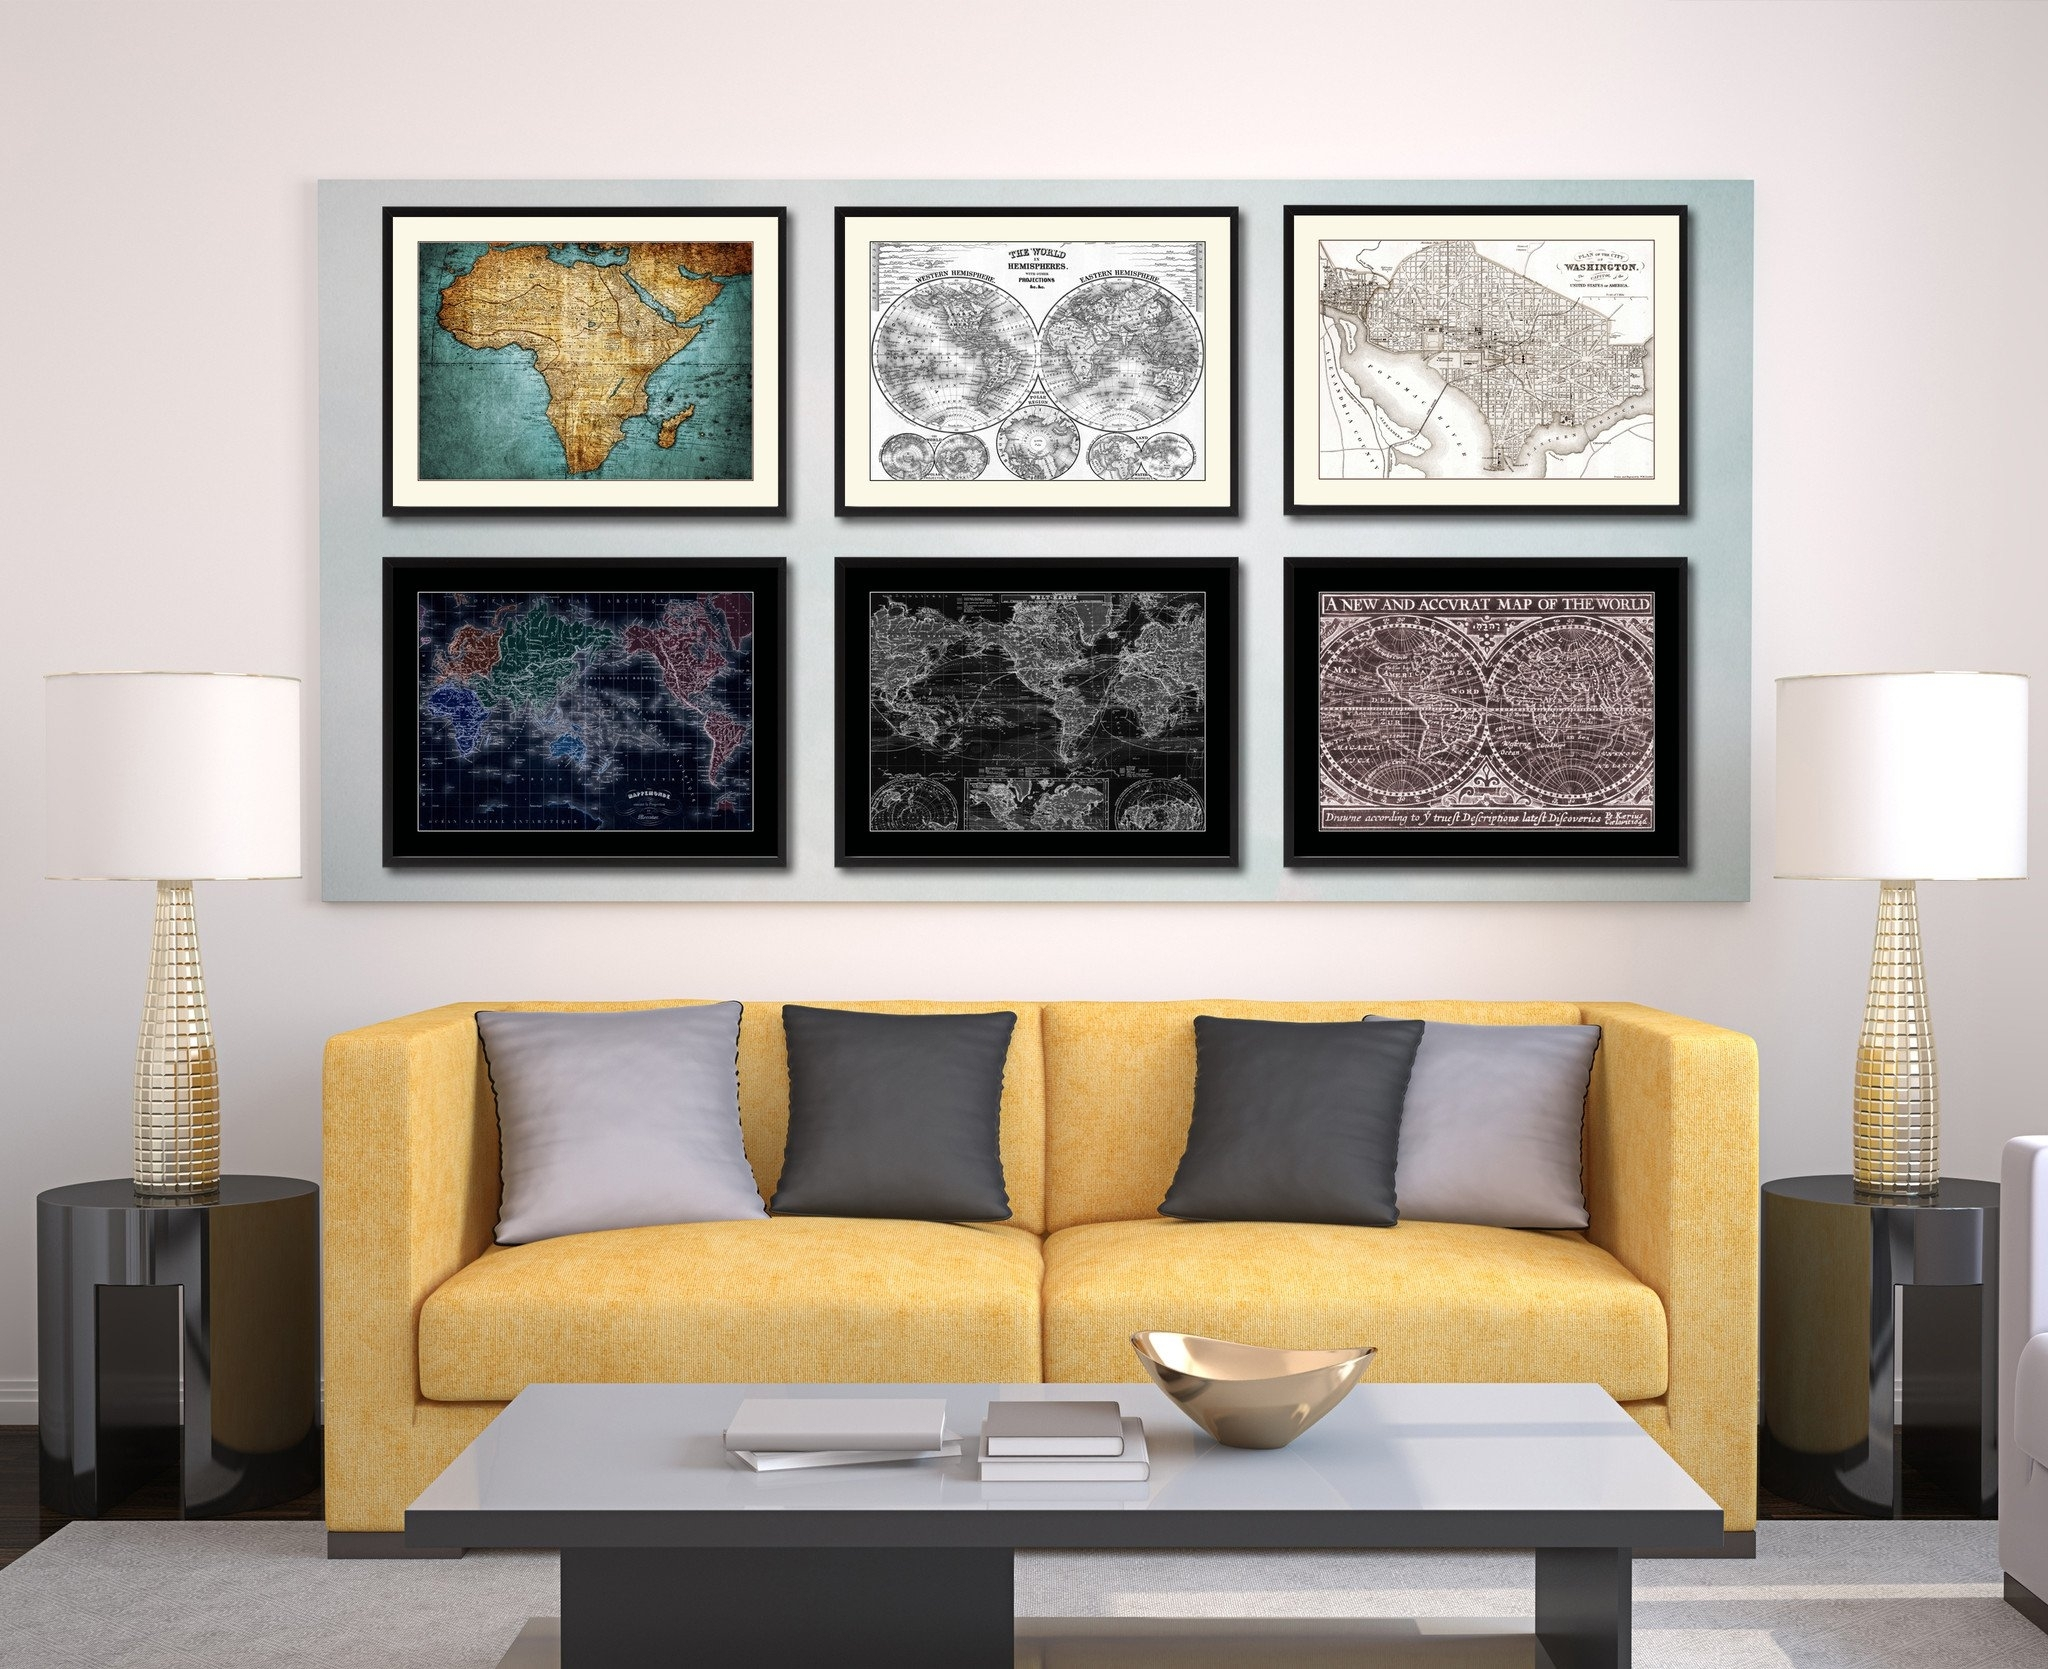 40 Sweet Inspiration Washington Dc Wall Art | Panfan Site In 2018 Washington Dc Framed Art Prints (Gallery 13 of 15)